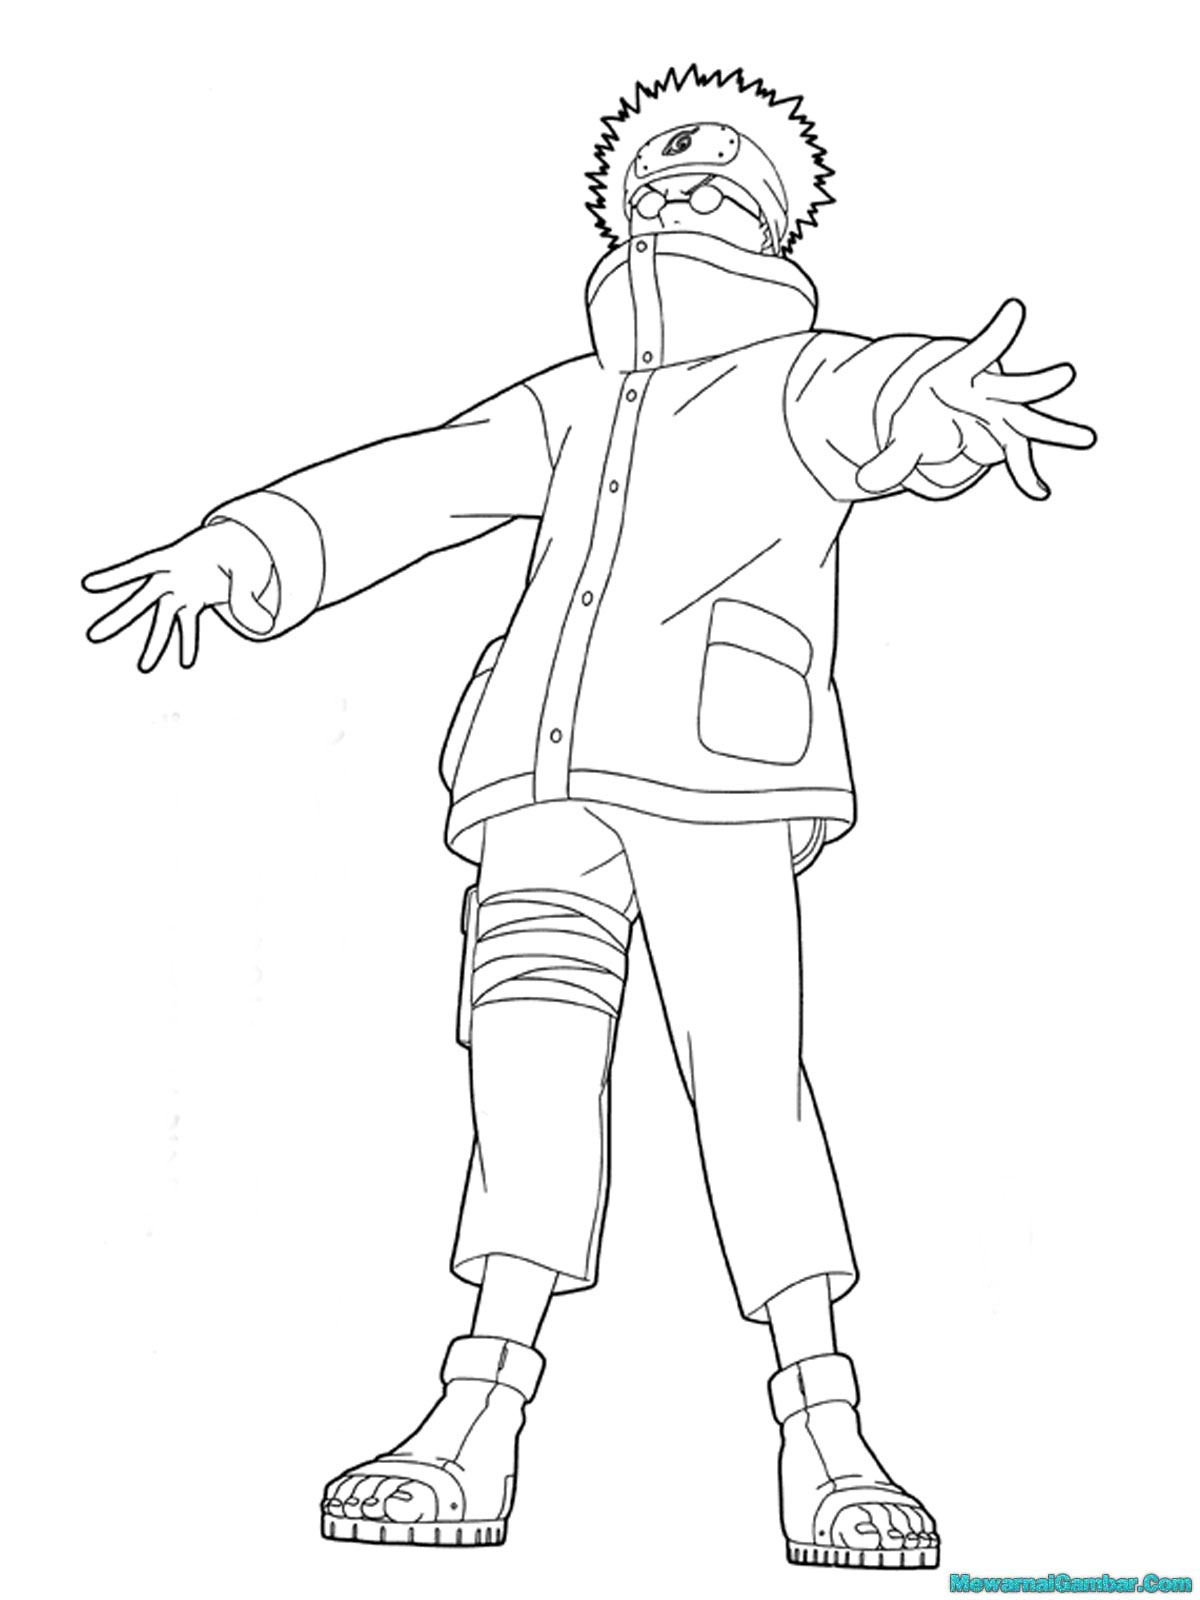 Shino shippuden coloring pages